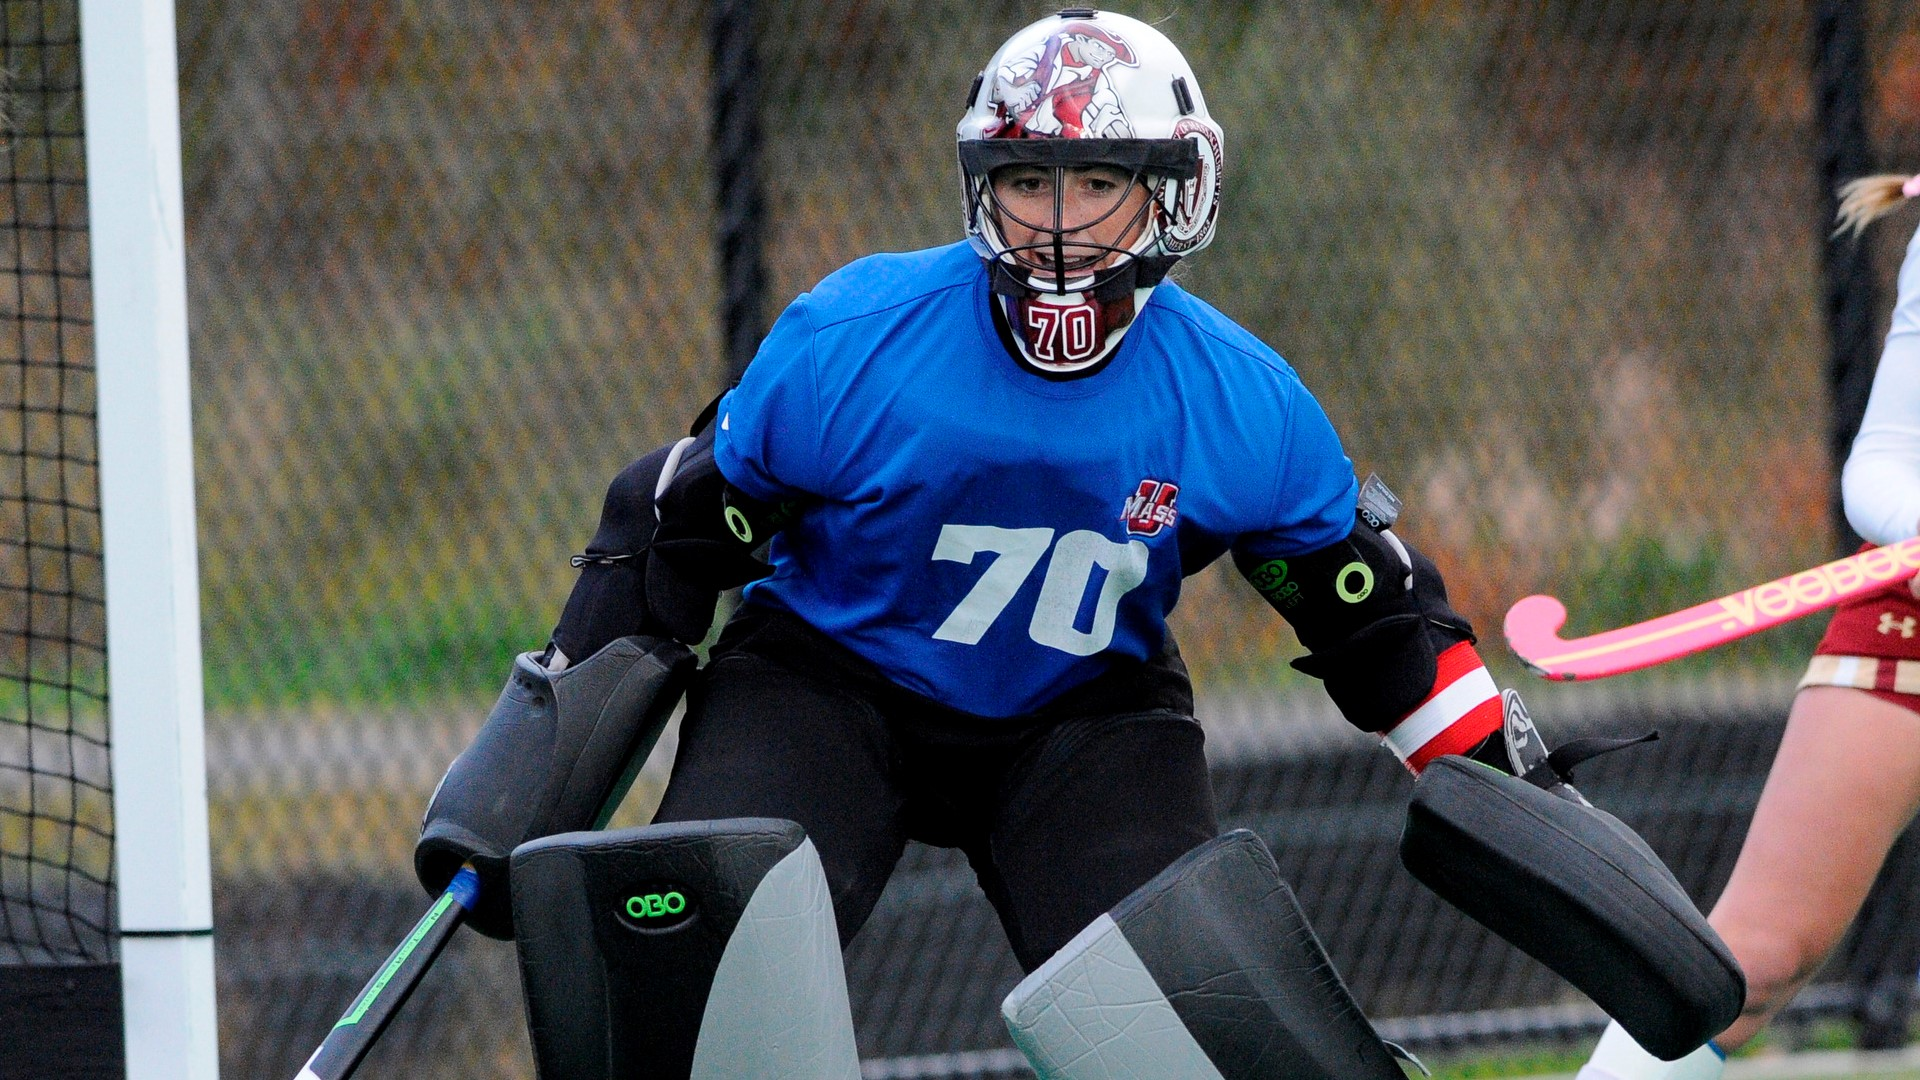 Five Local Field Hockey Players Earn Roster Spots for Team USA's Upcoming Competitions